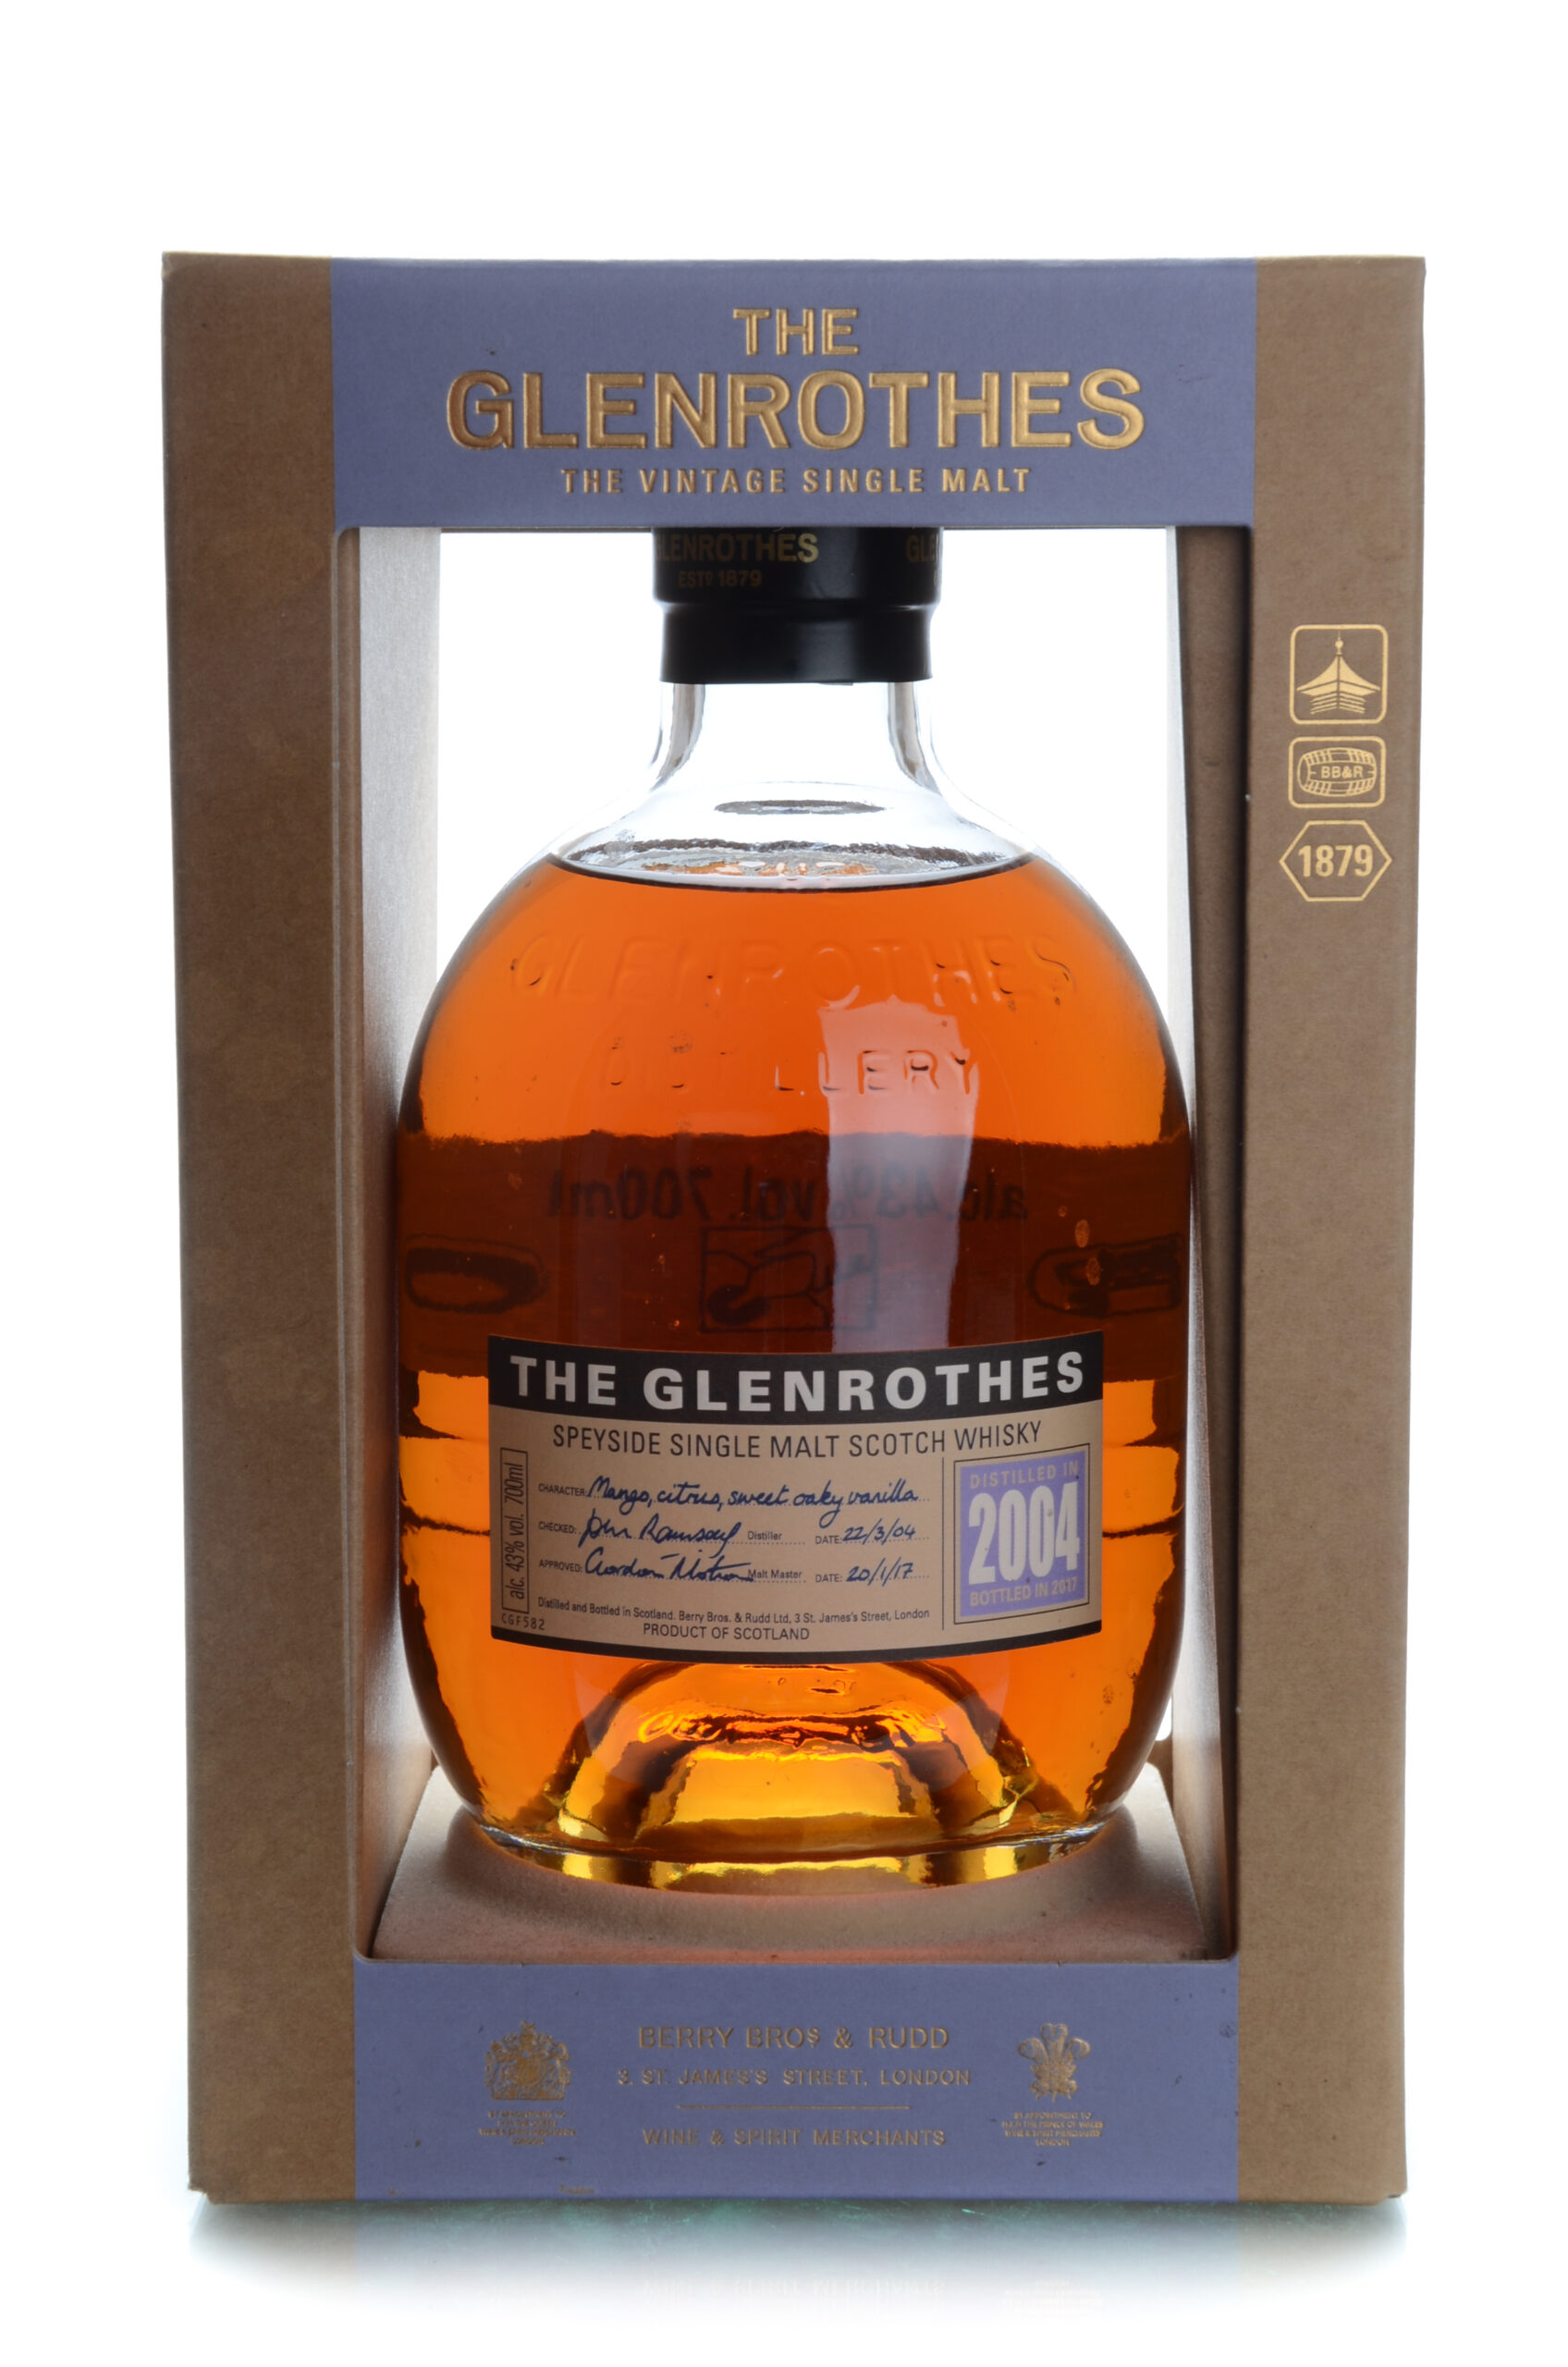 The Glenrothes 2004